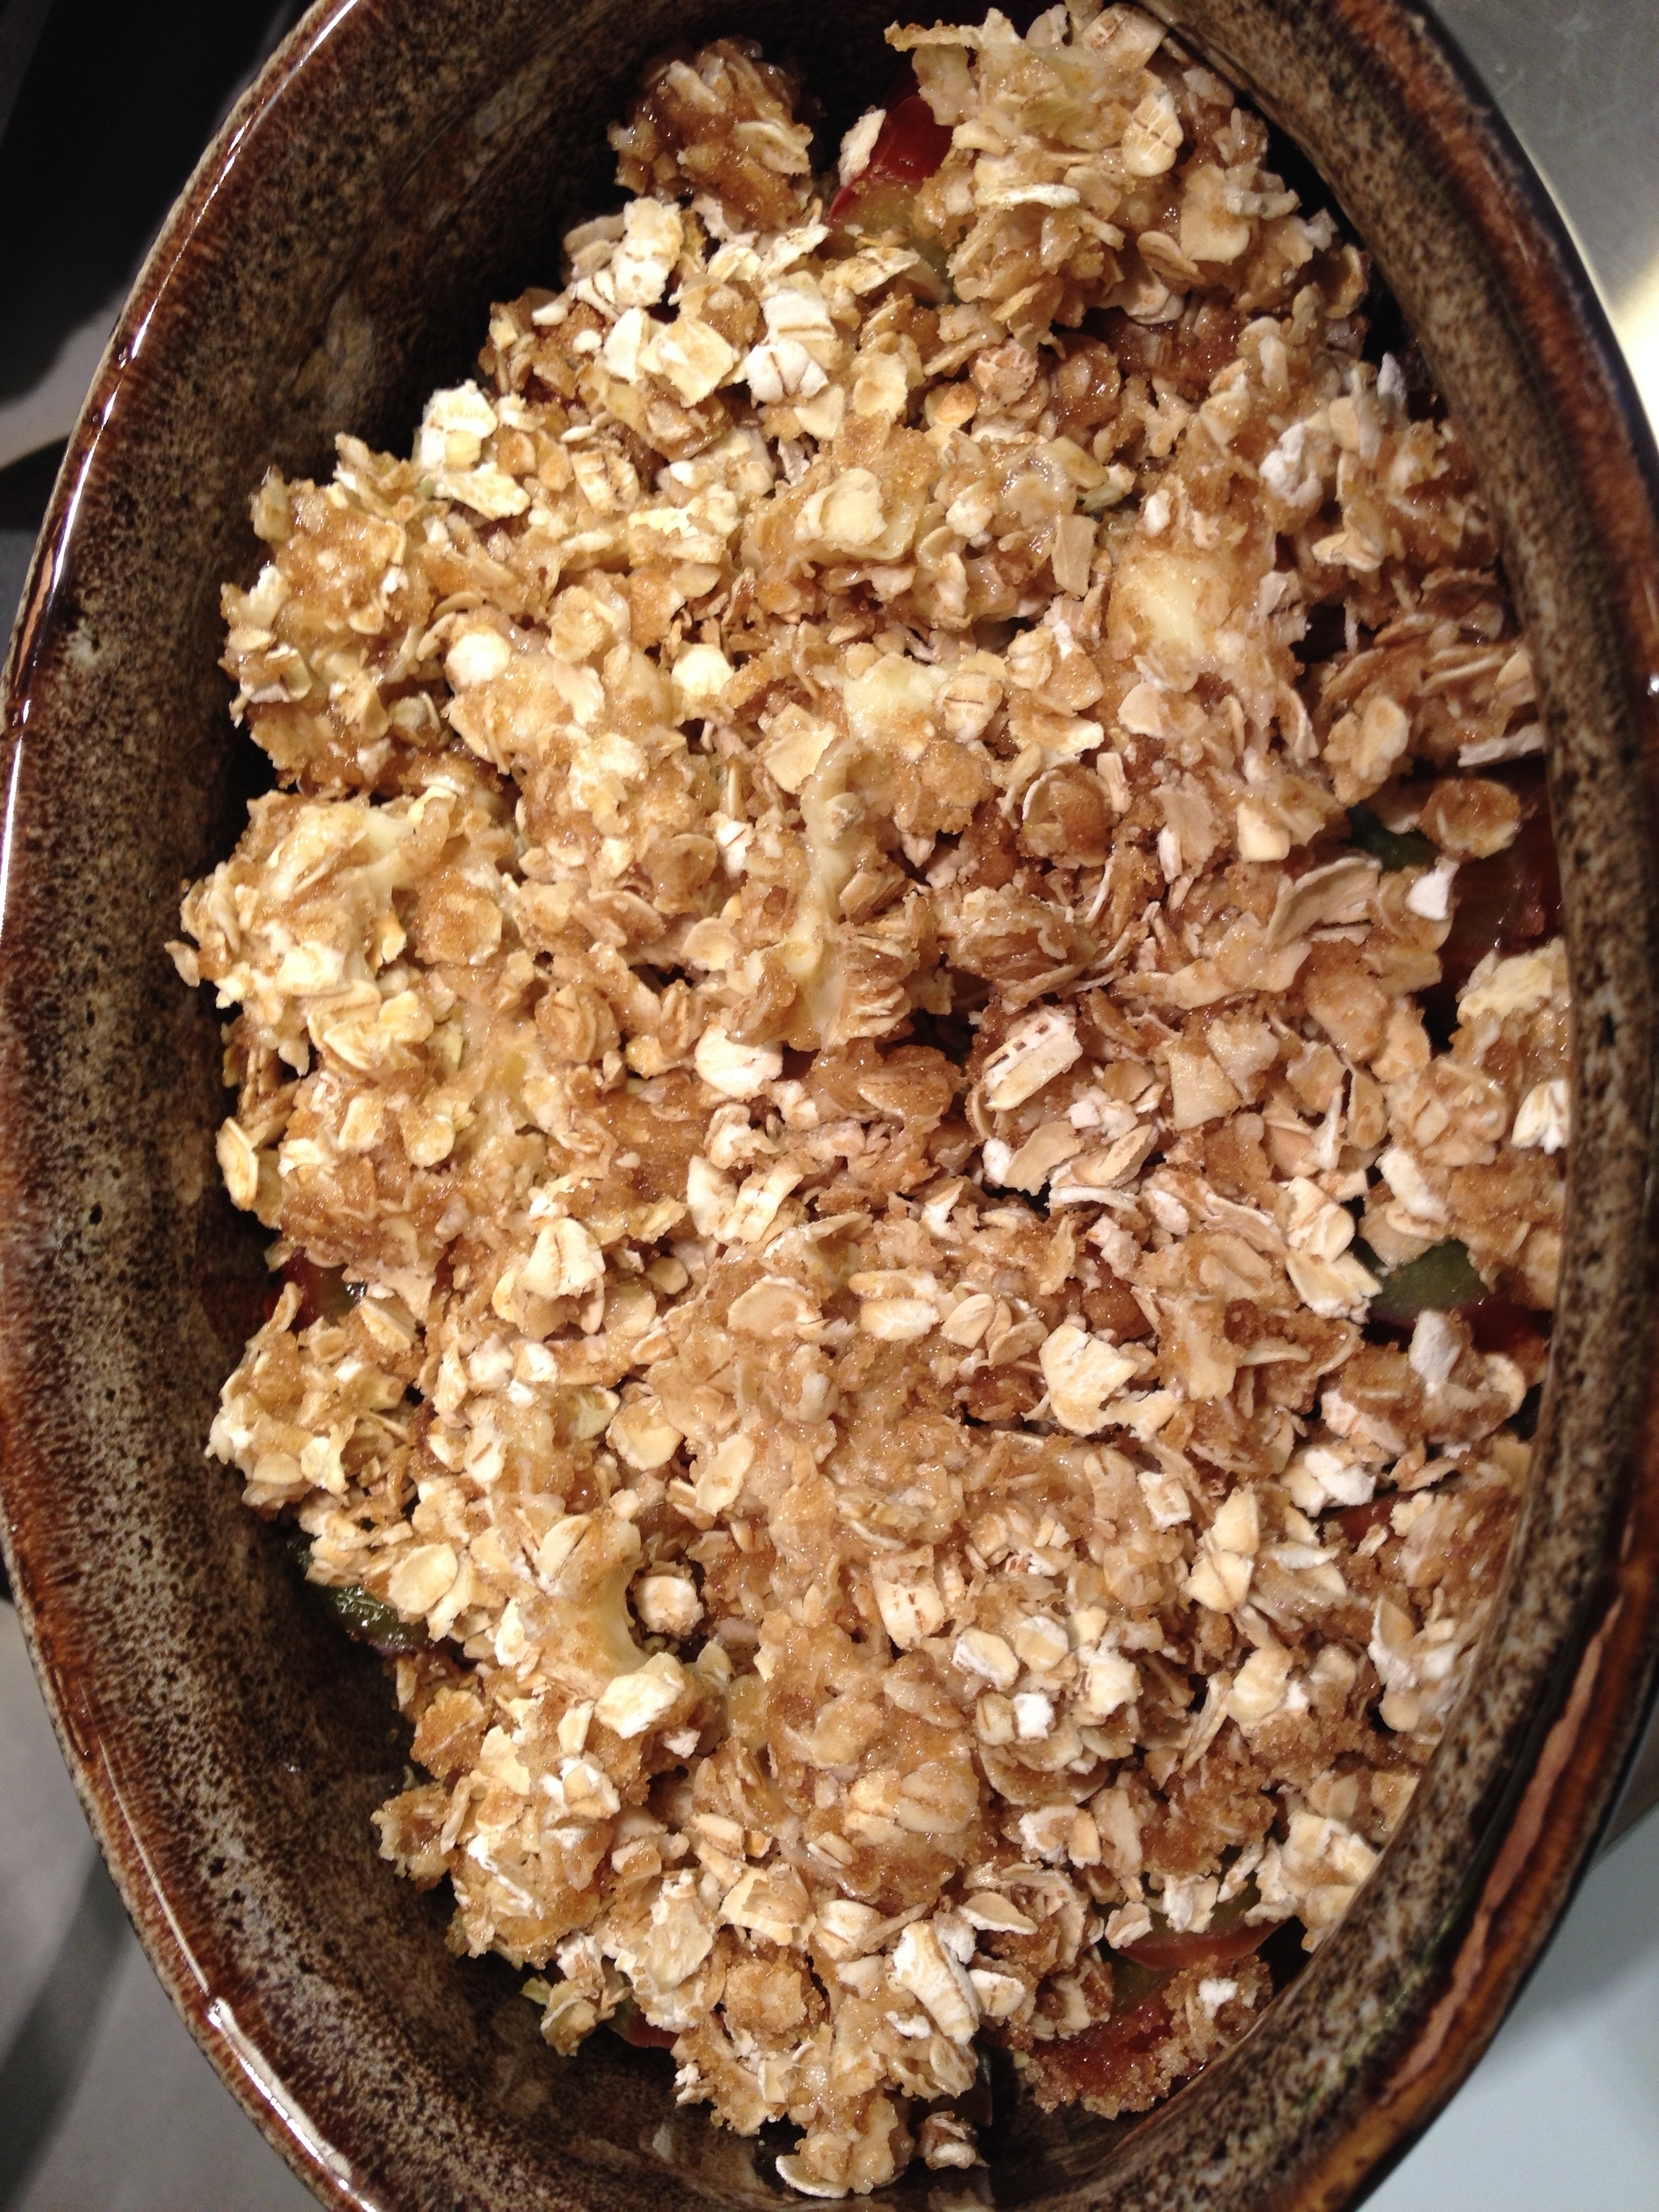 Crumb topping